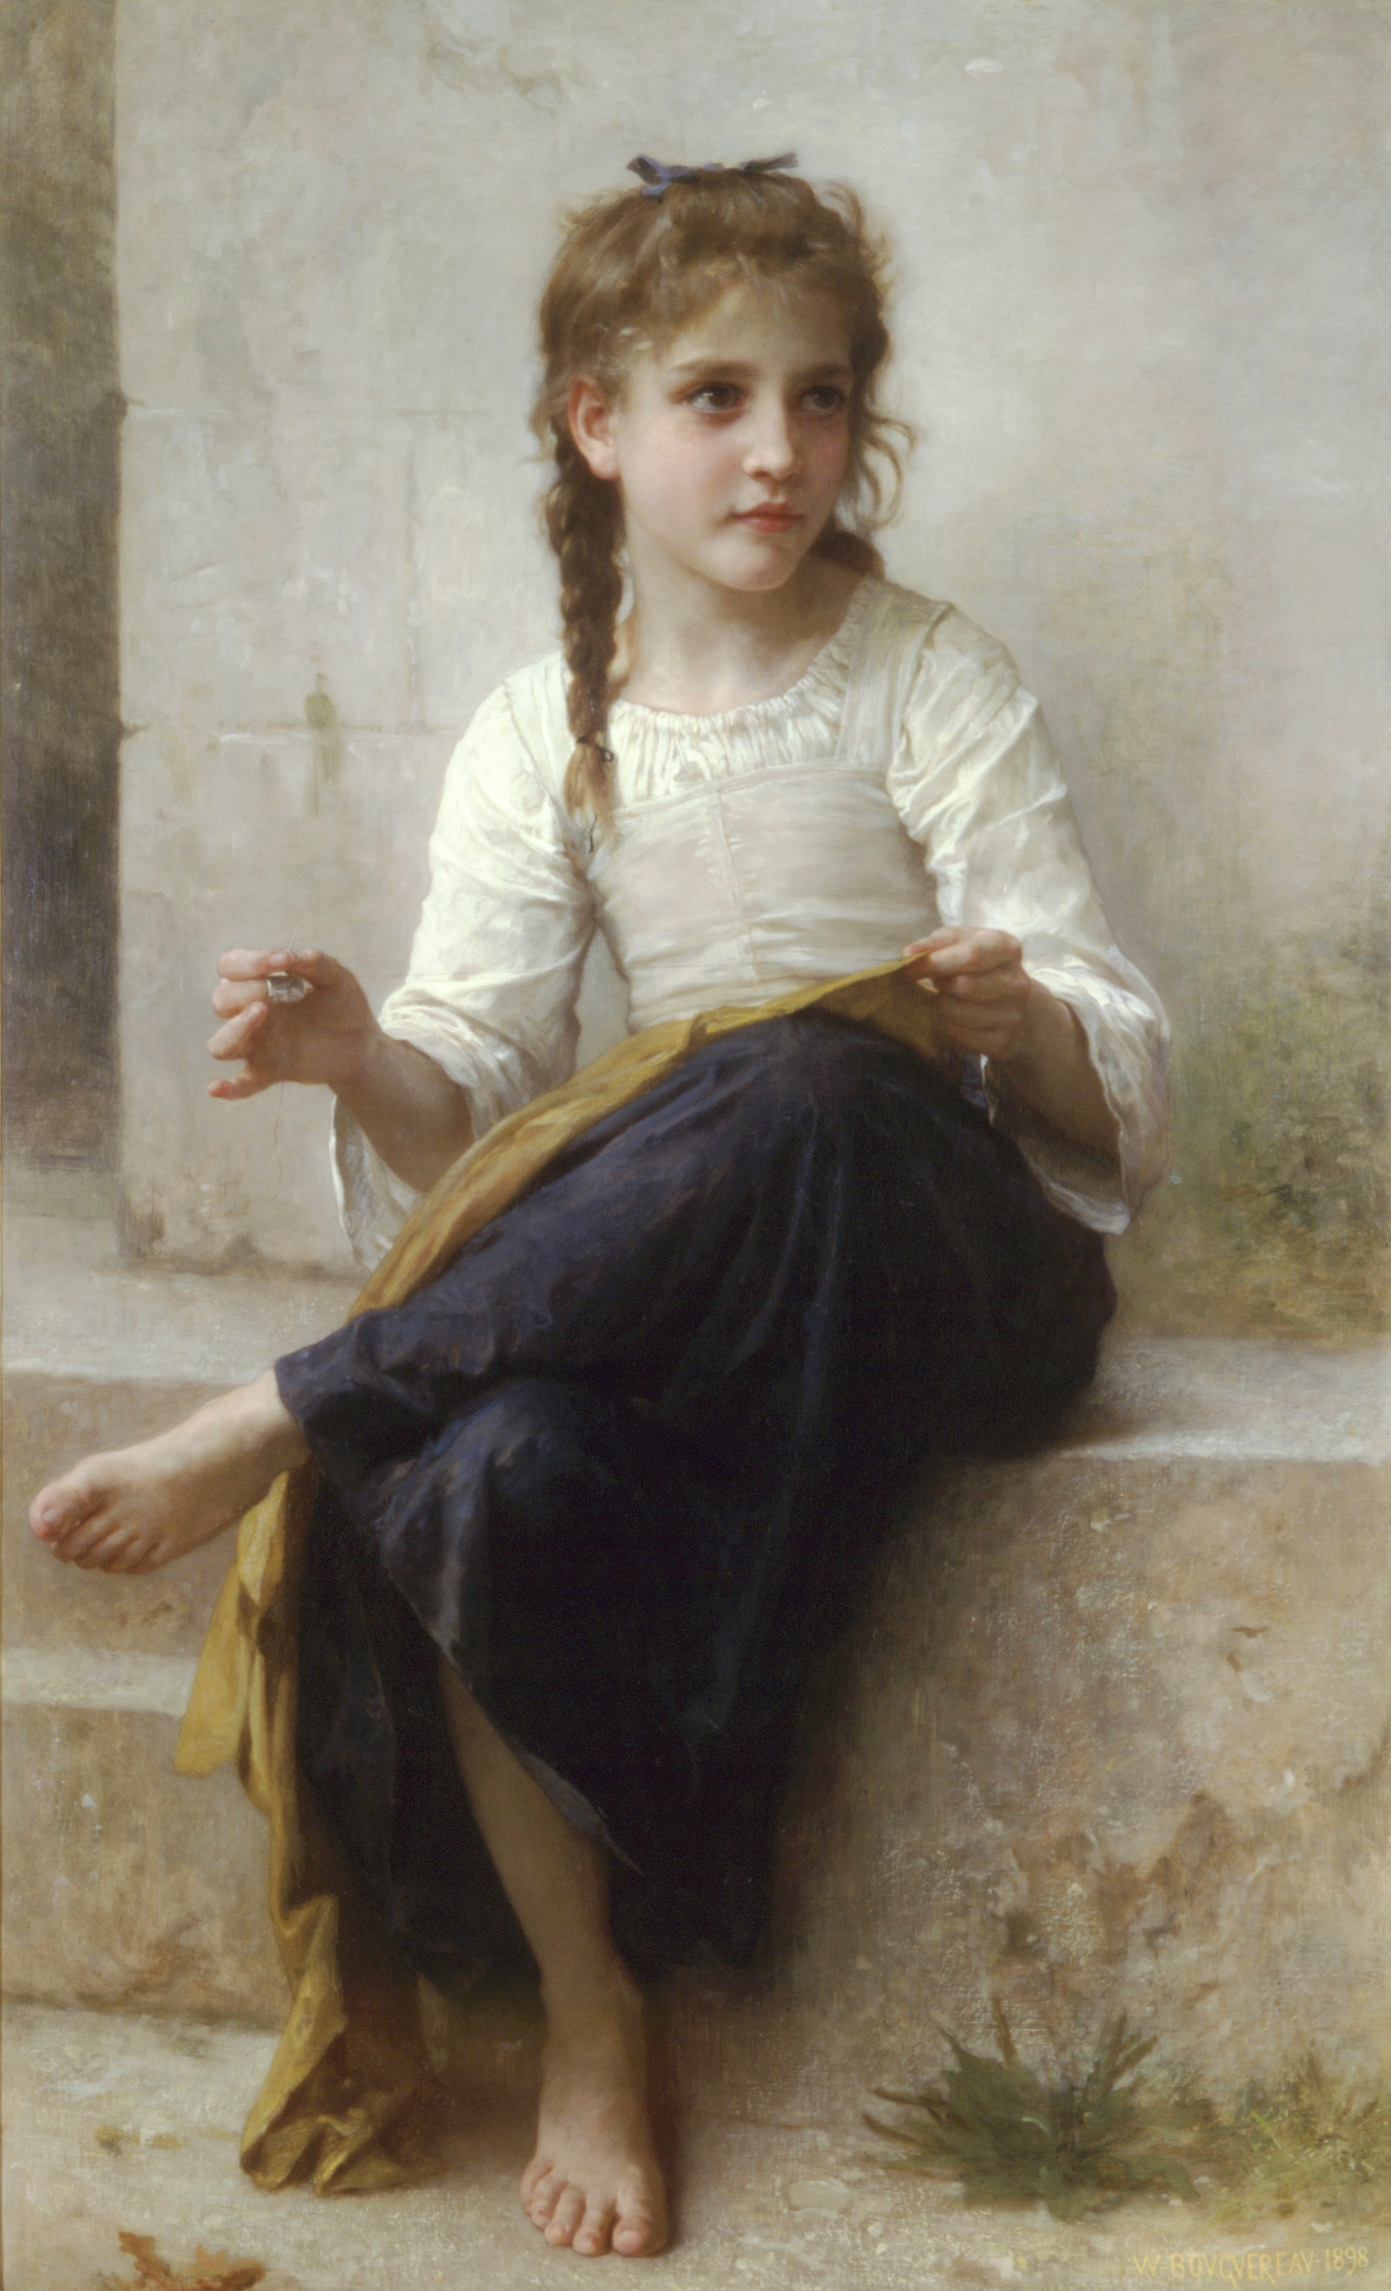 William-Adolphe Bouguereau (1825-1905) - Sewing (1898) Edit 2